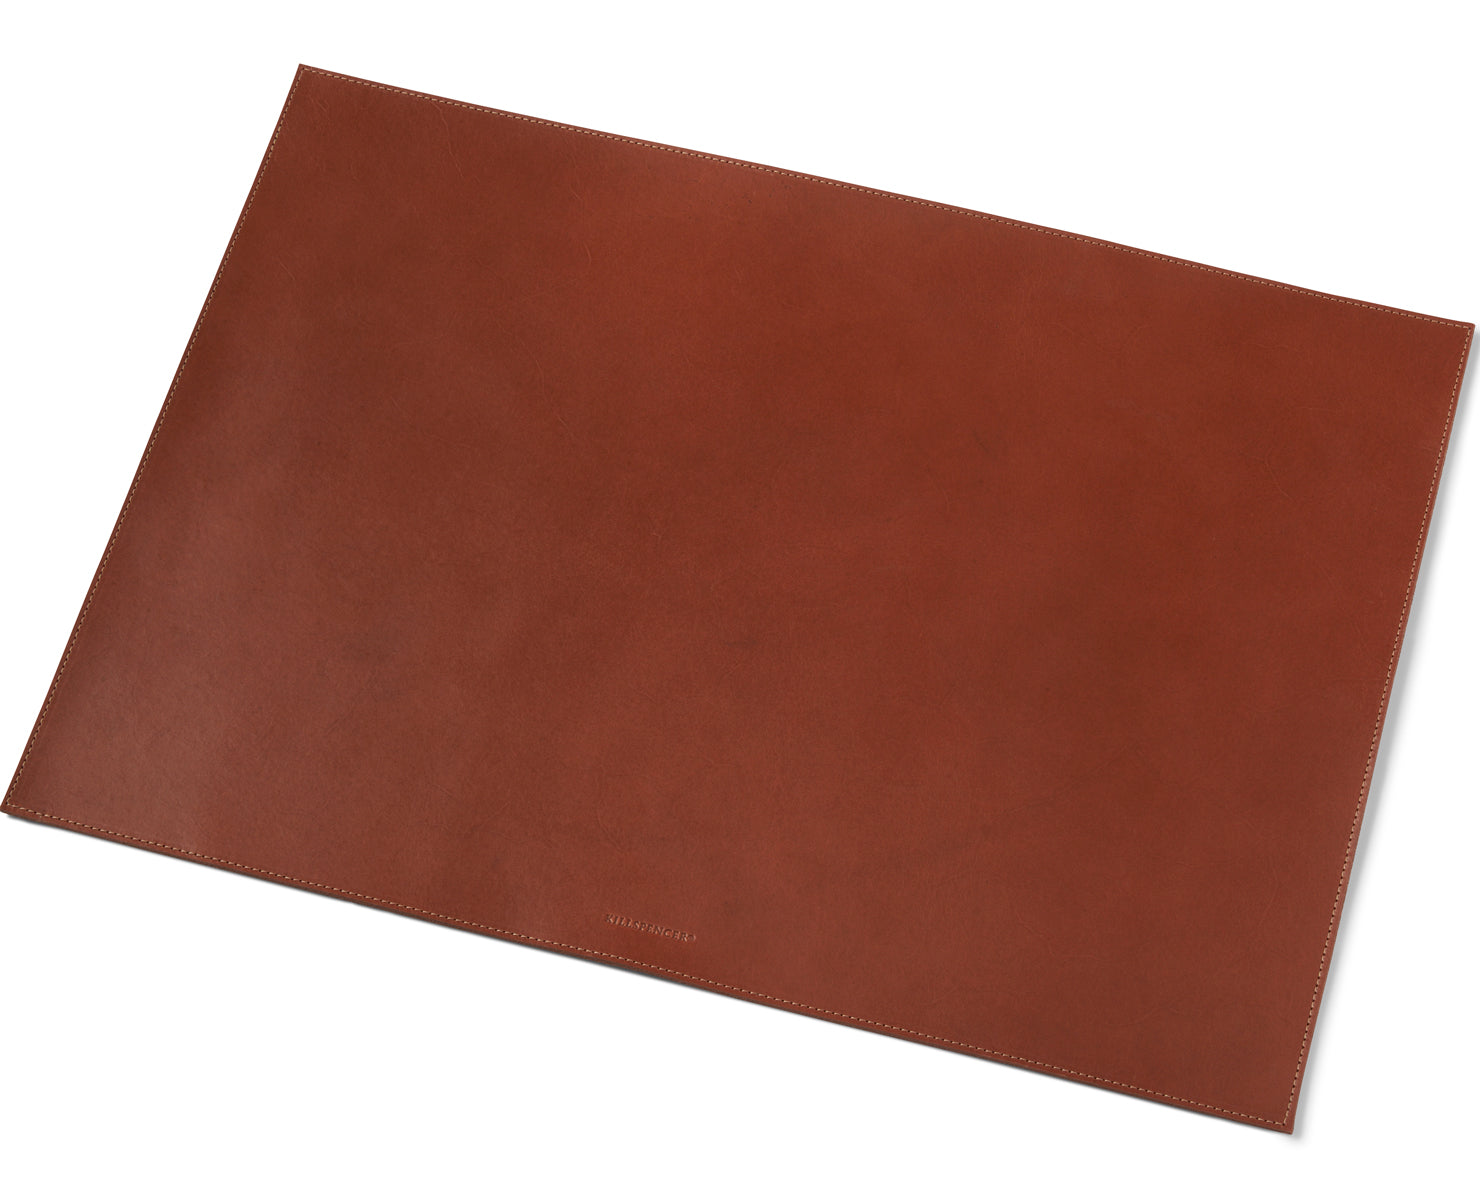 DESK MAT | KILLSPENCER® - Cognac Bullhide Leather